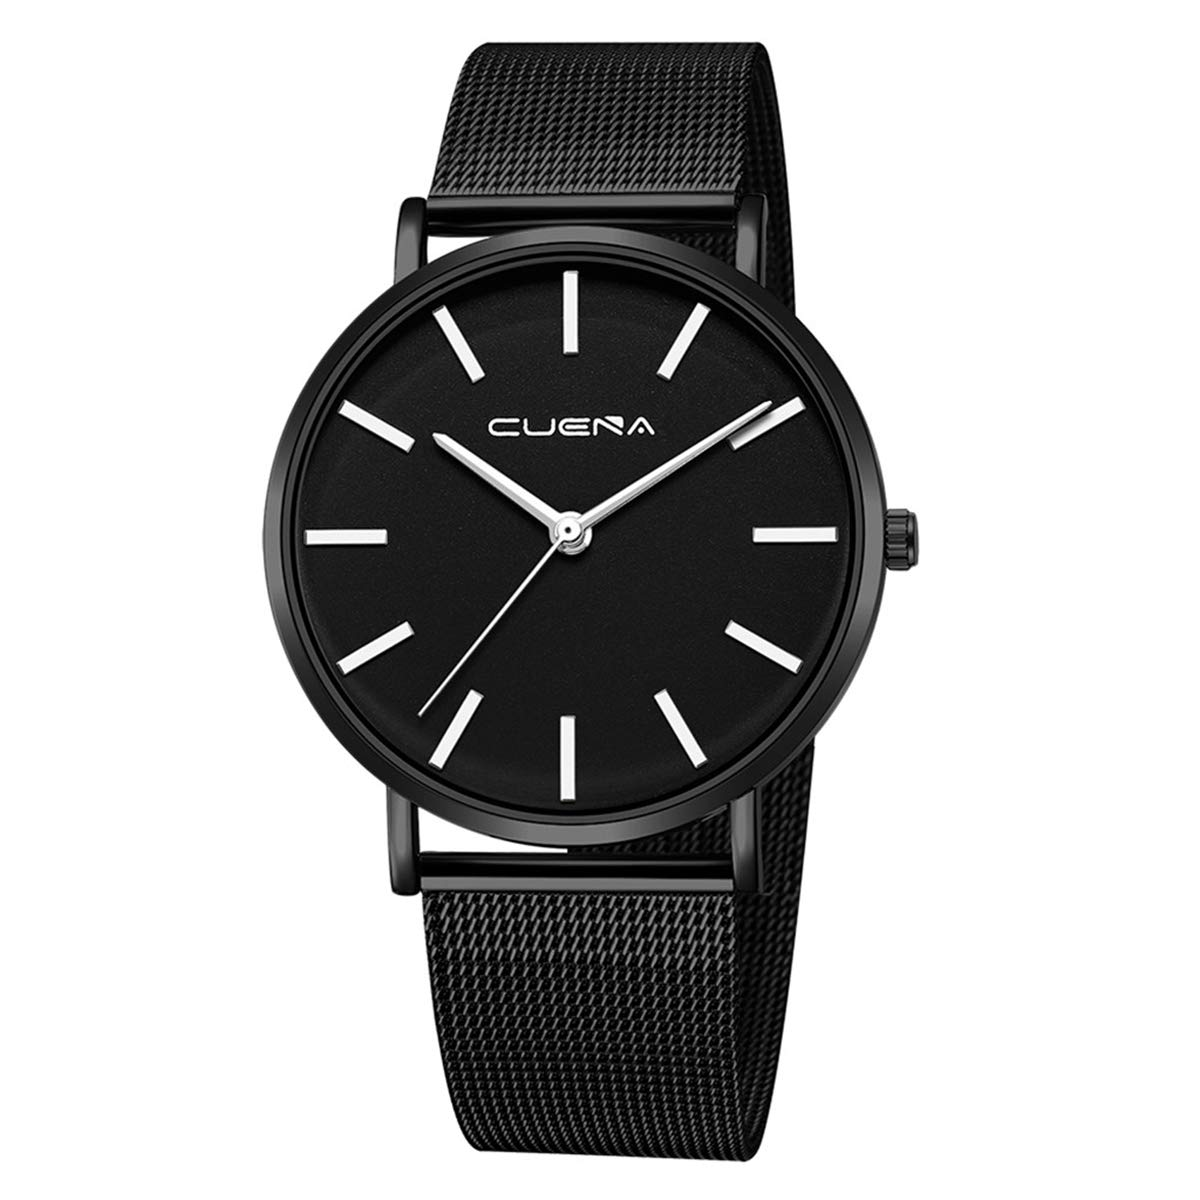 ZODRQ Men's Watch,Fashion Watches Stainless Steel Mesh Wrist Watch Casual Wristwatch Quartz Watch for Men Gift (C) by ZODRQ